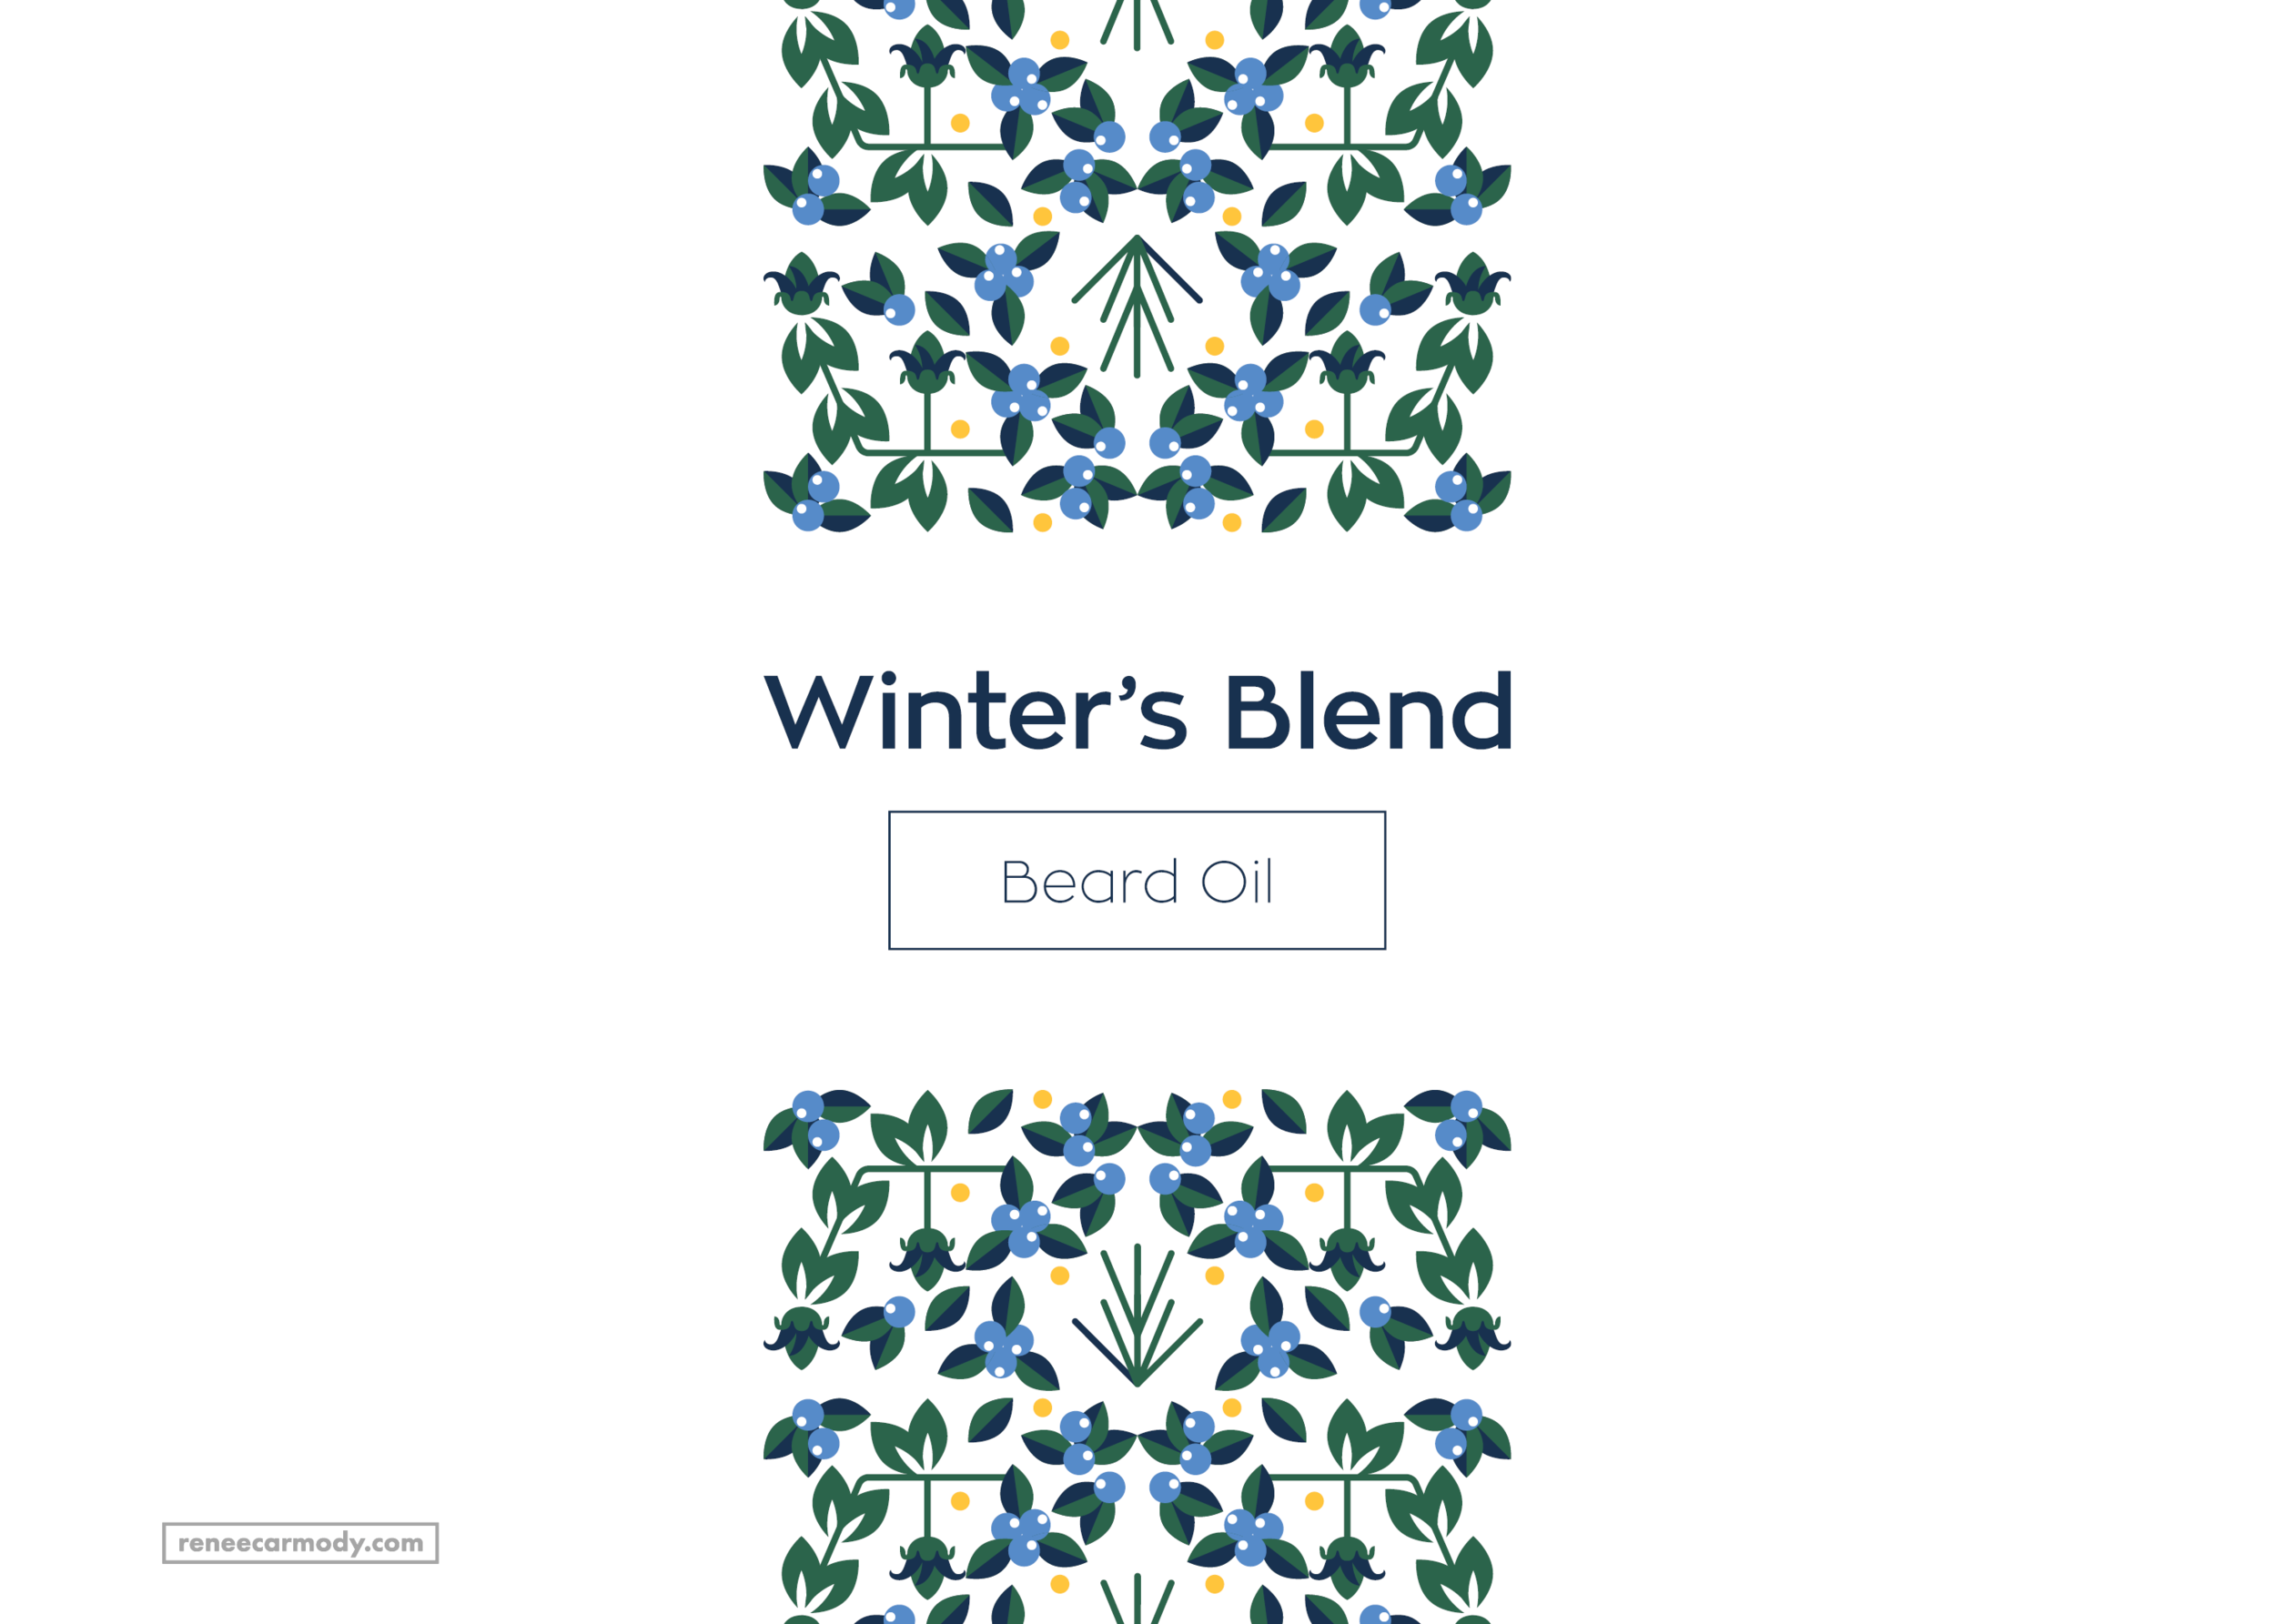 Logo and Brand design by Renée Carmody Design for Winter's Blend—a beard and hair oil company using only kind ingredients.